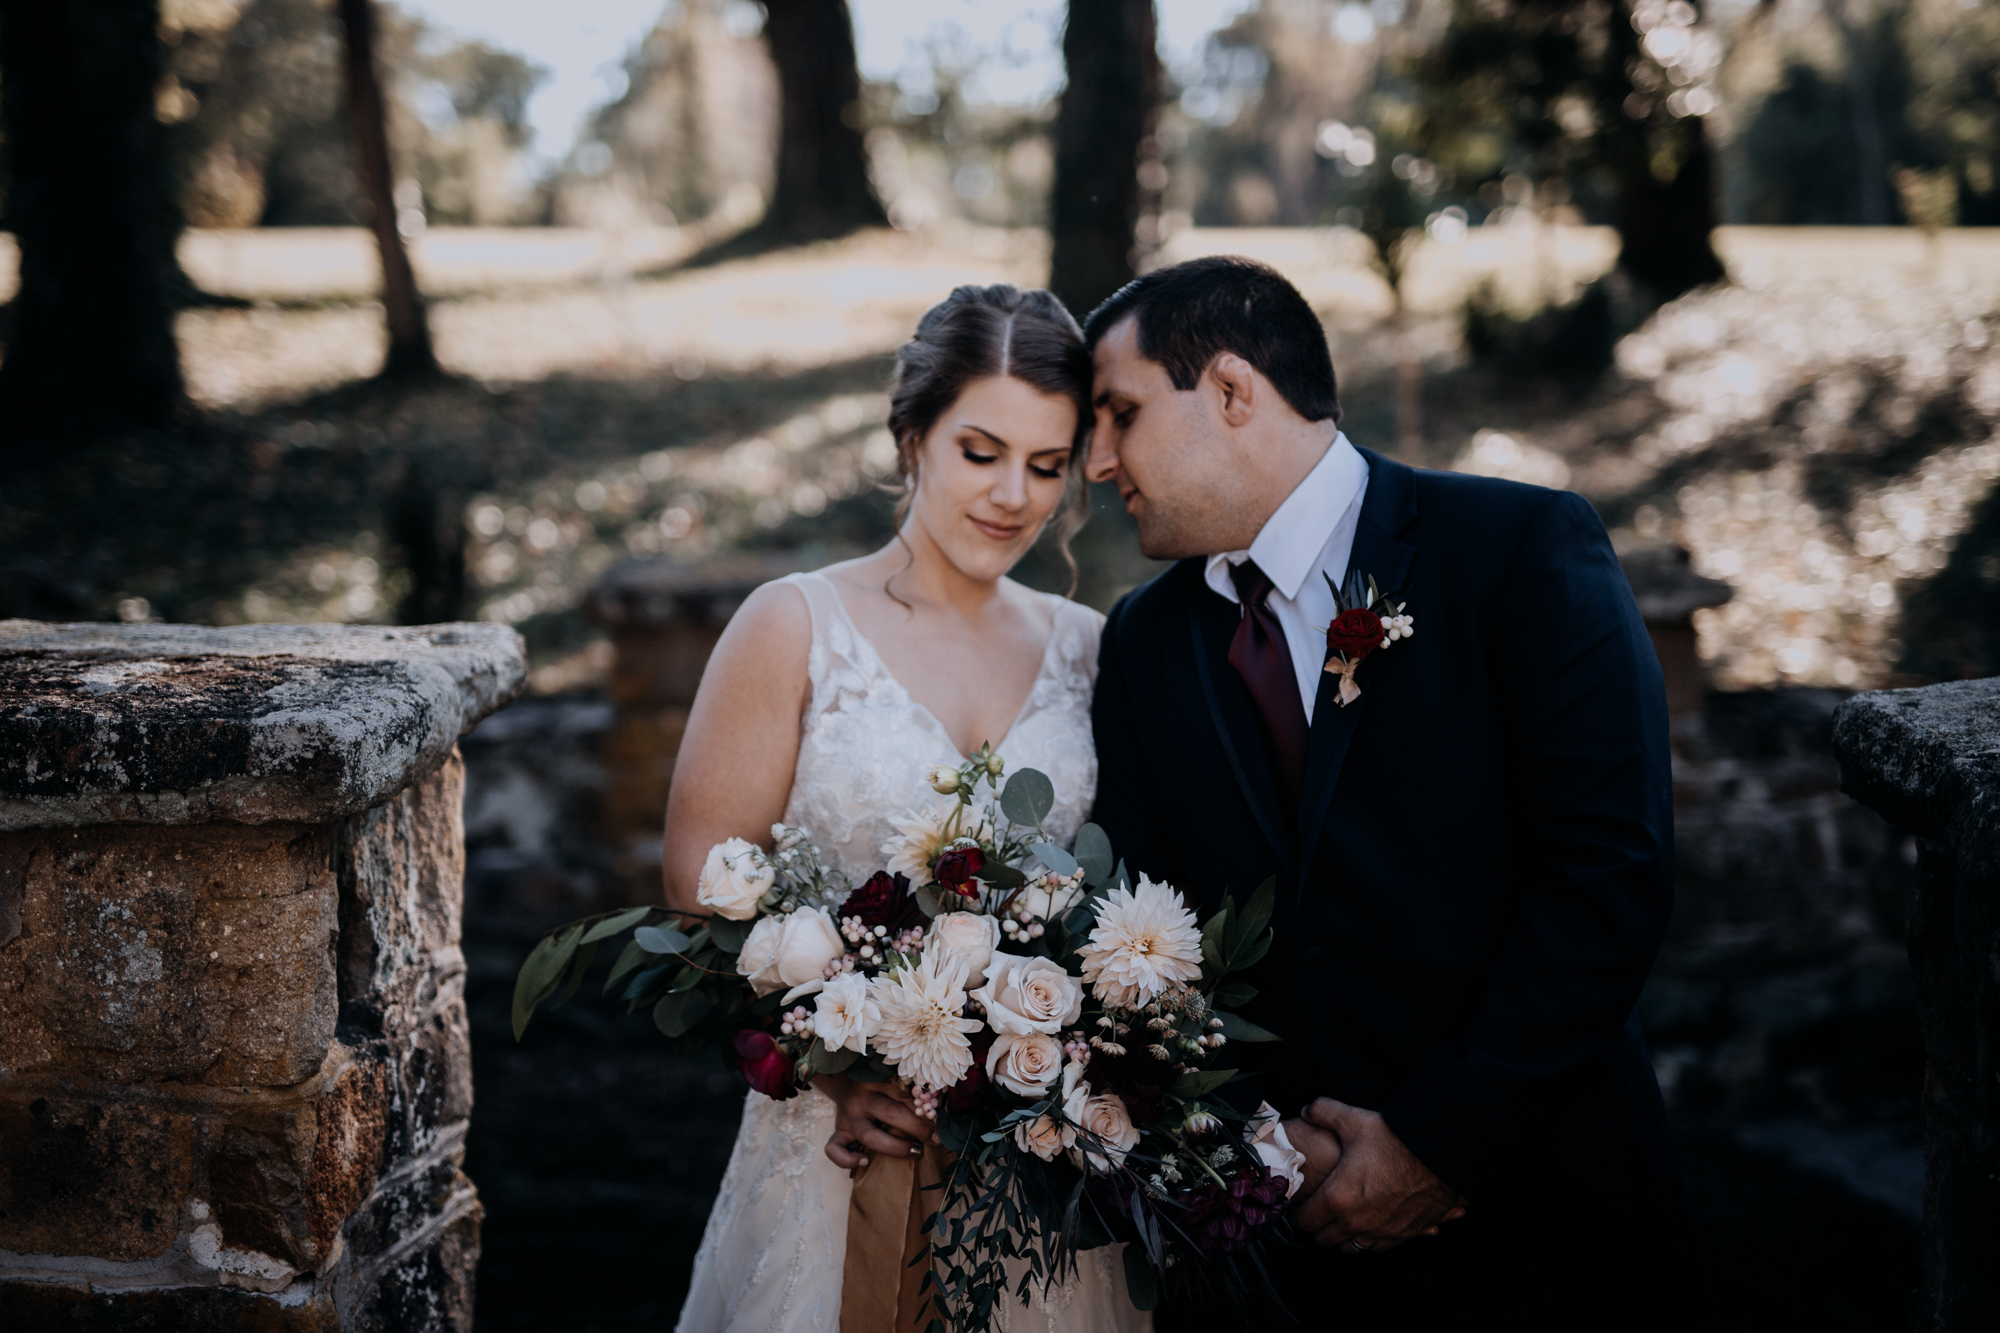 Cambria_Creative_Photographer_Boho_Wedding_Historic_Shady_Lane-4946.jpg